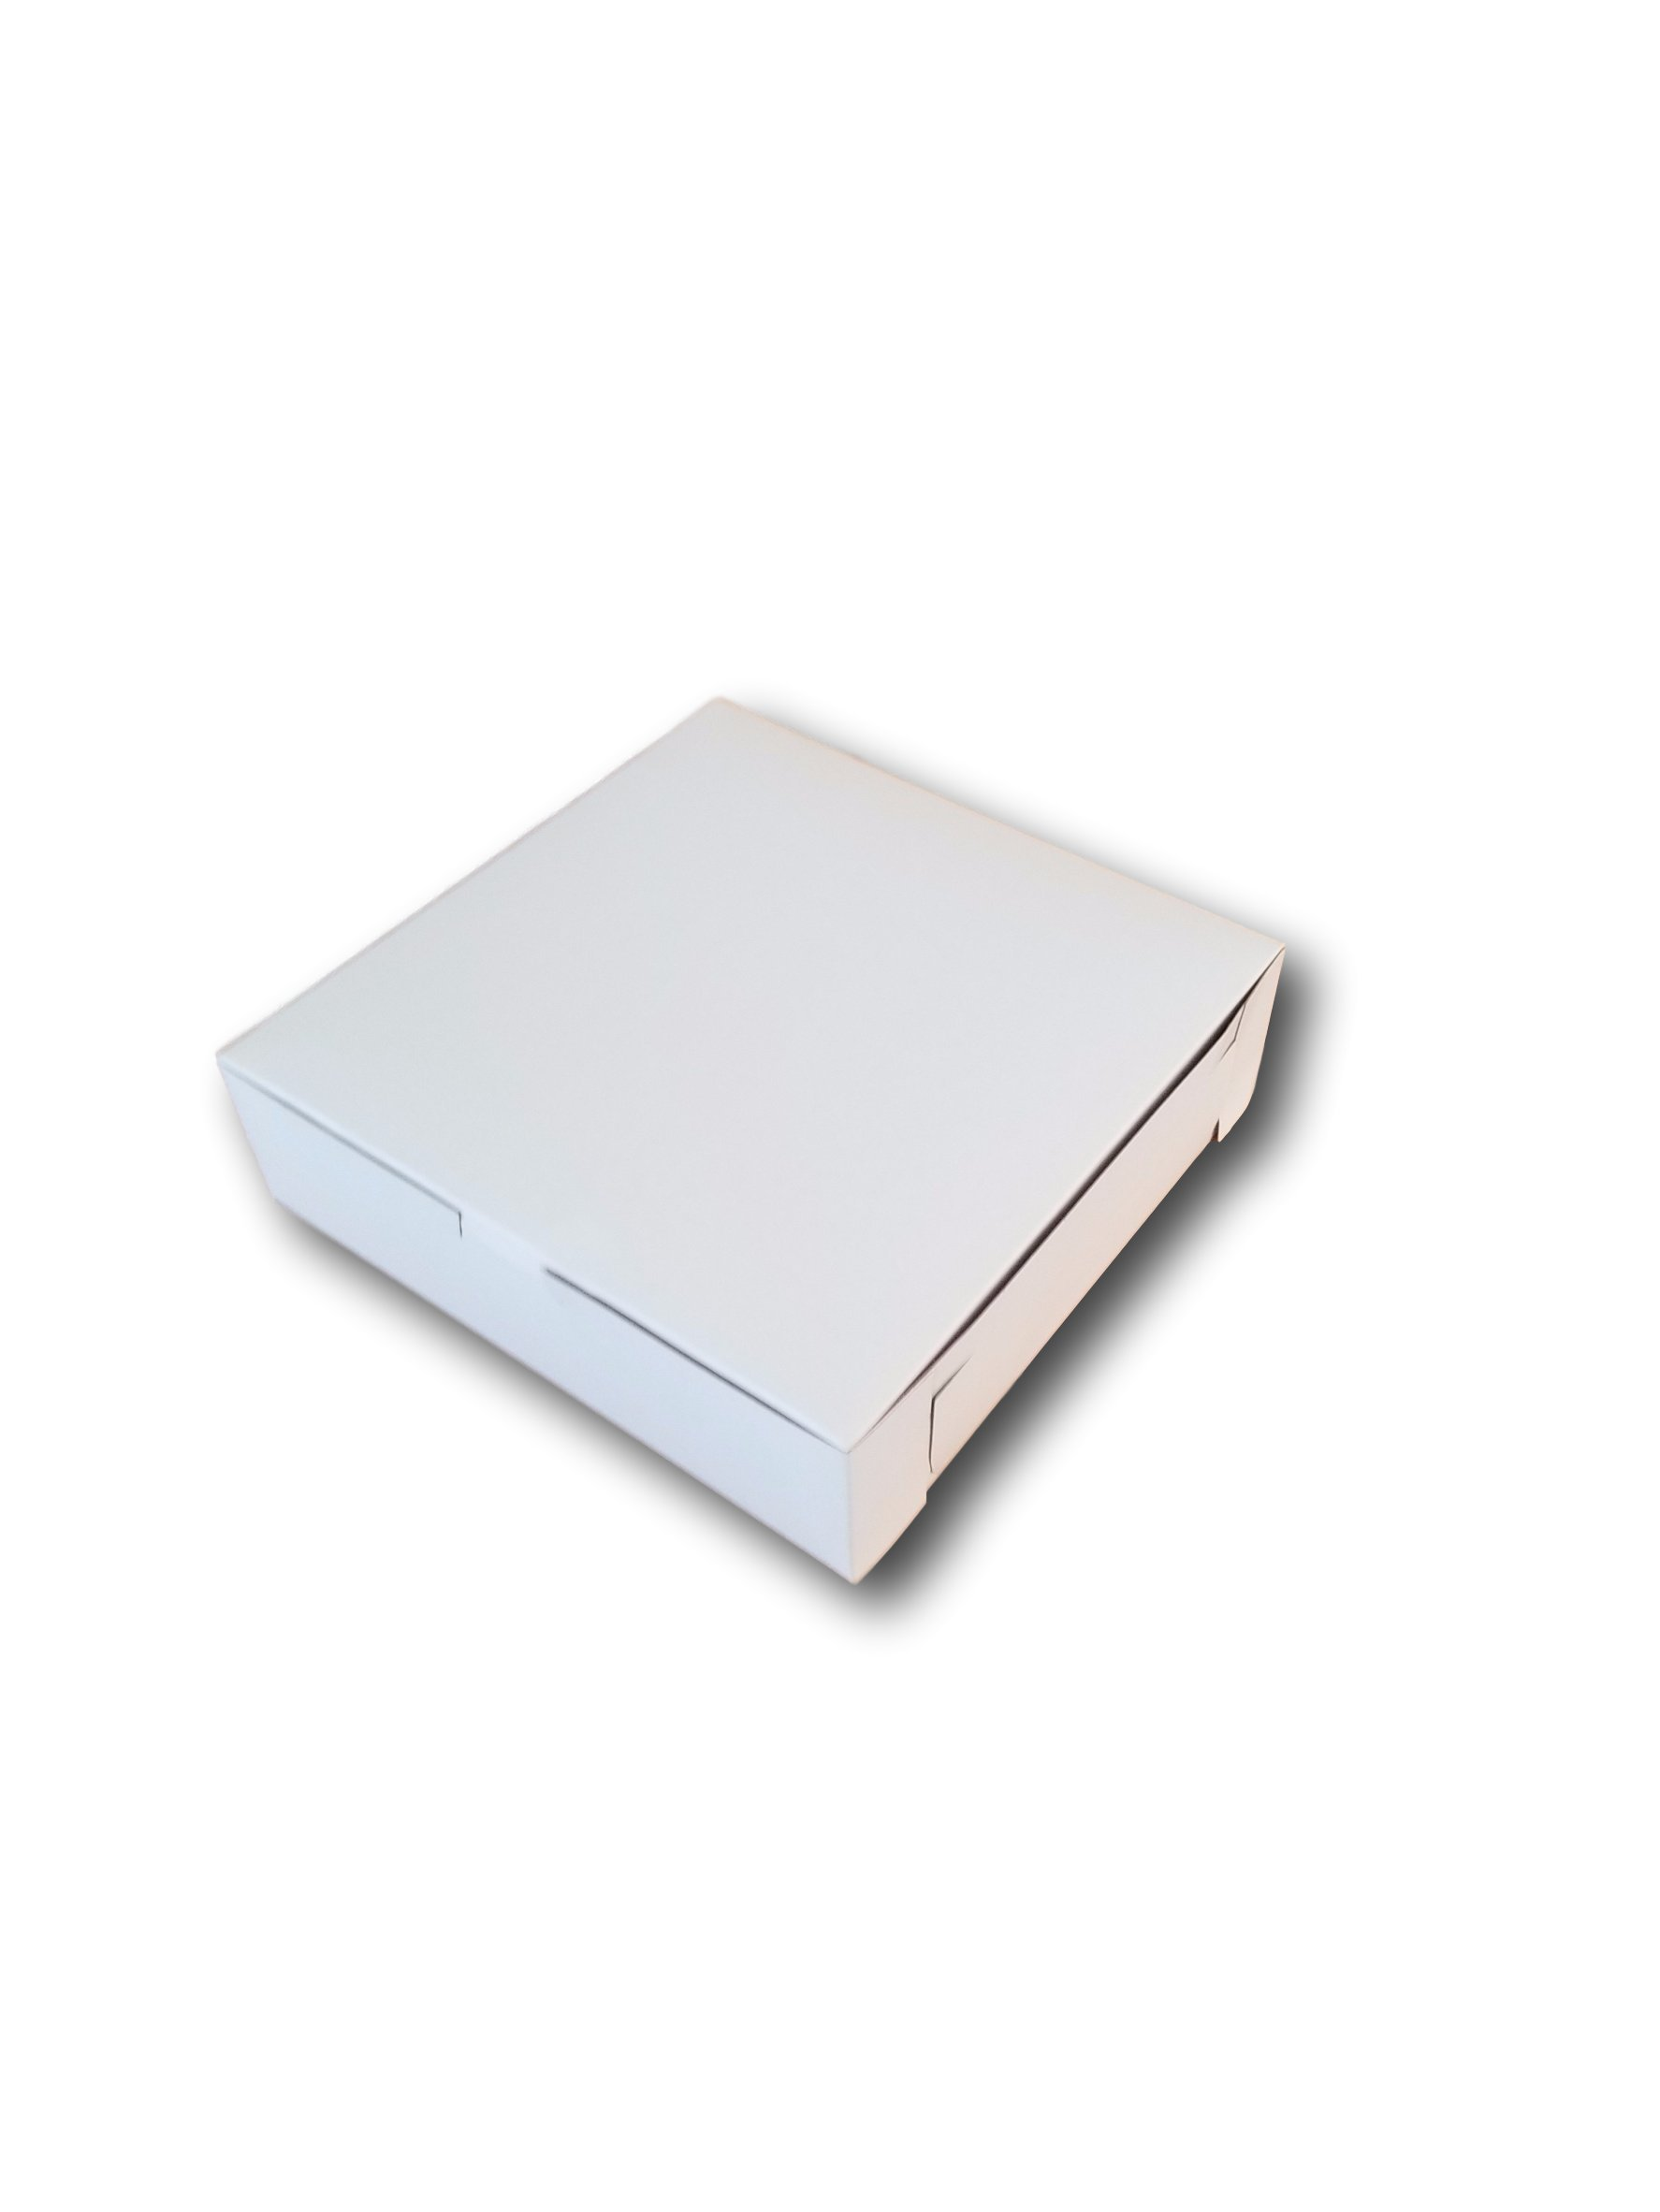 MT Products 8 x 8 x 2.5 Clay Coated Kraft Paperboard White Non-Window Lock Corner Bakery Box (Pack of 15)